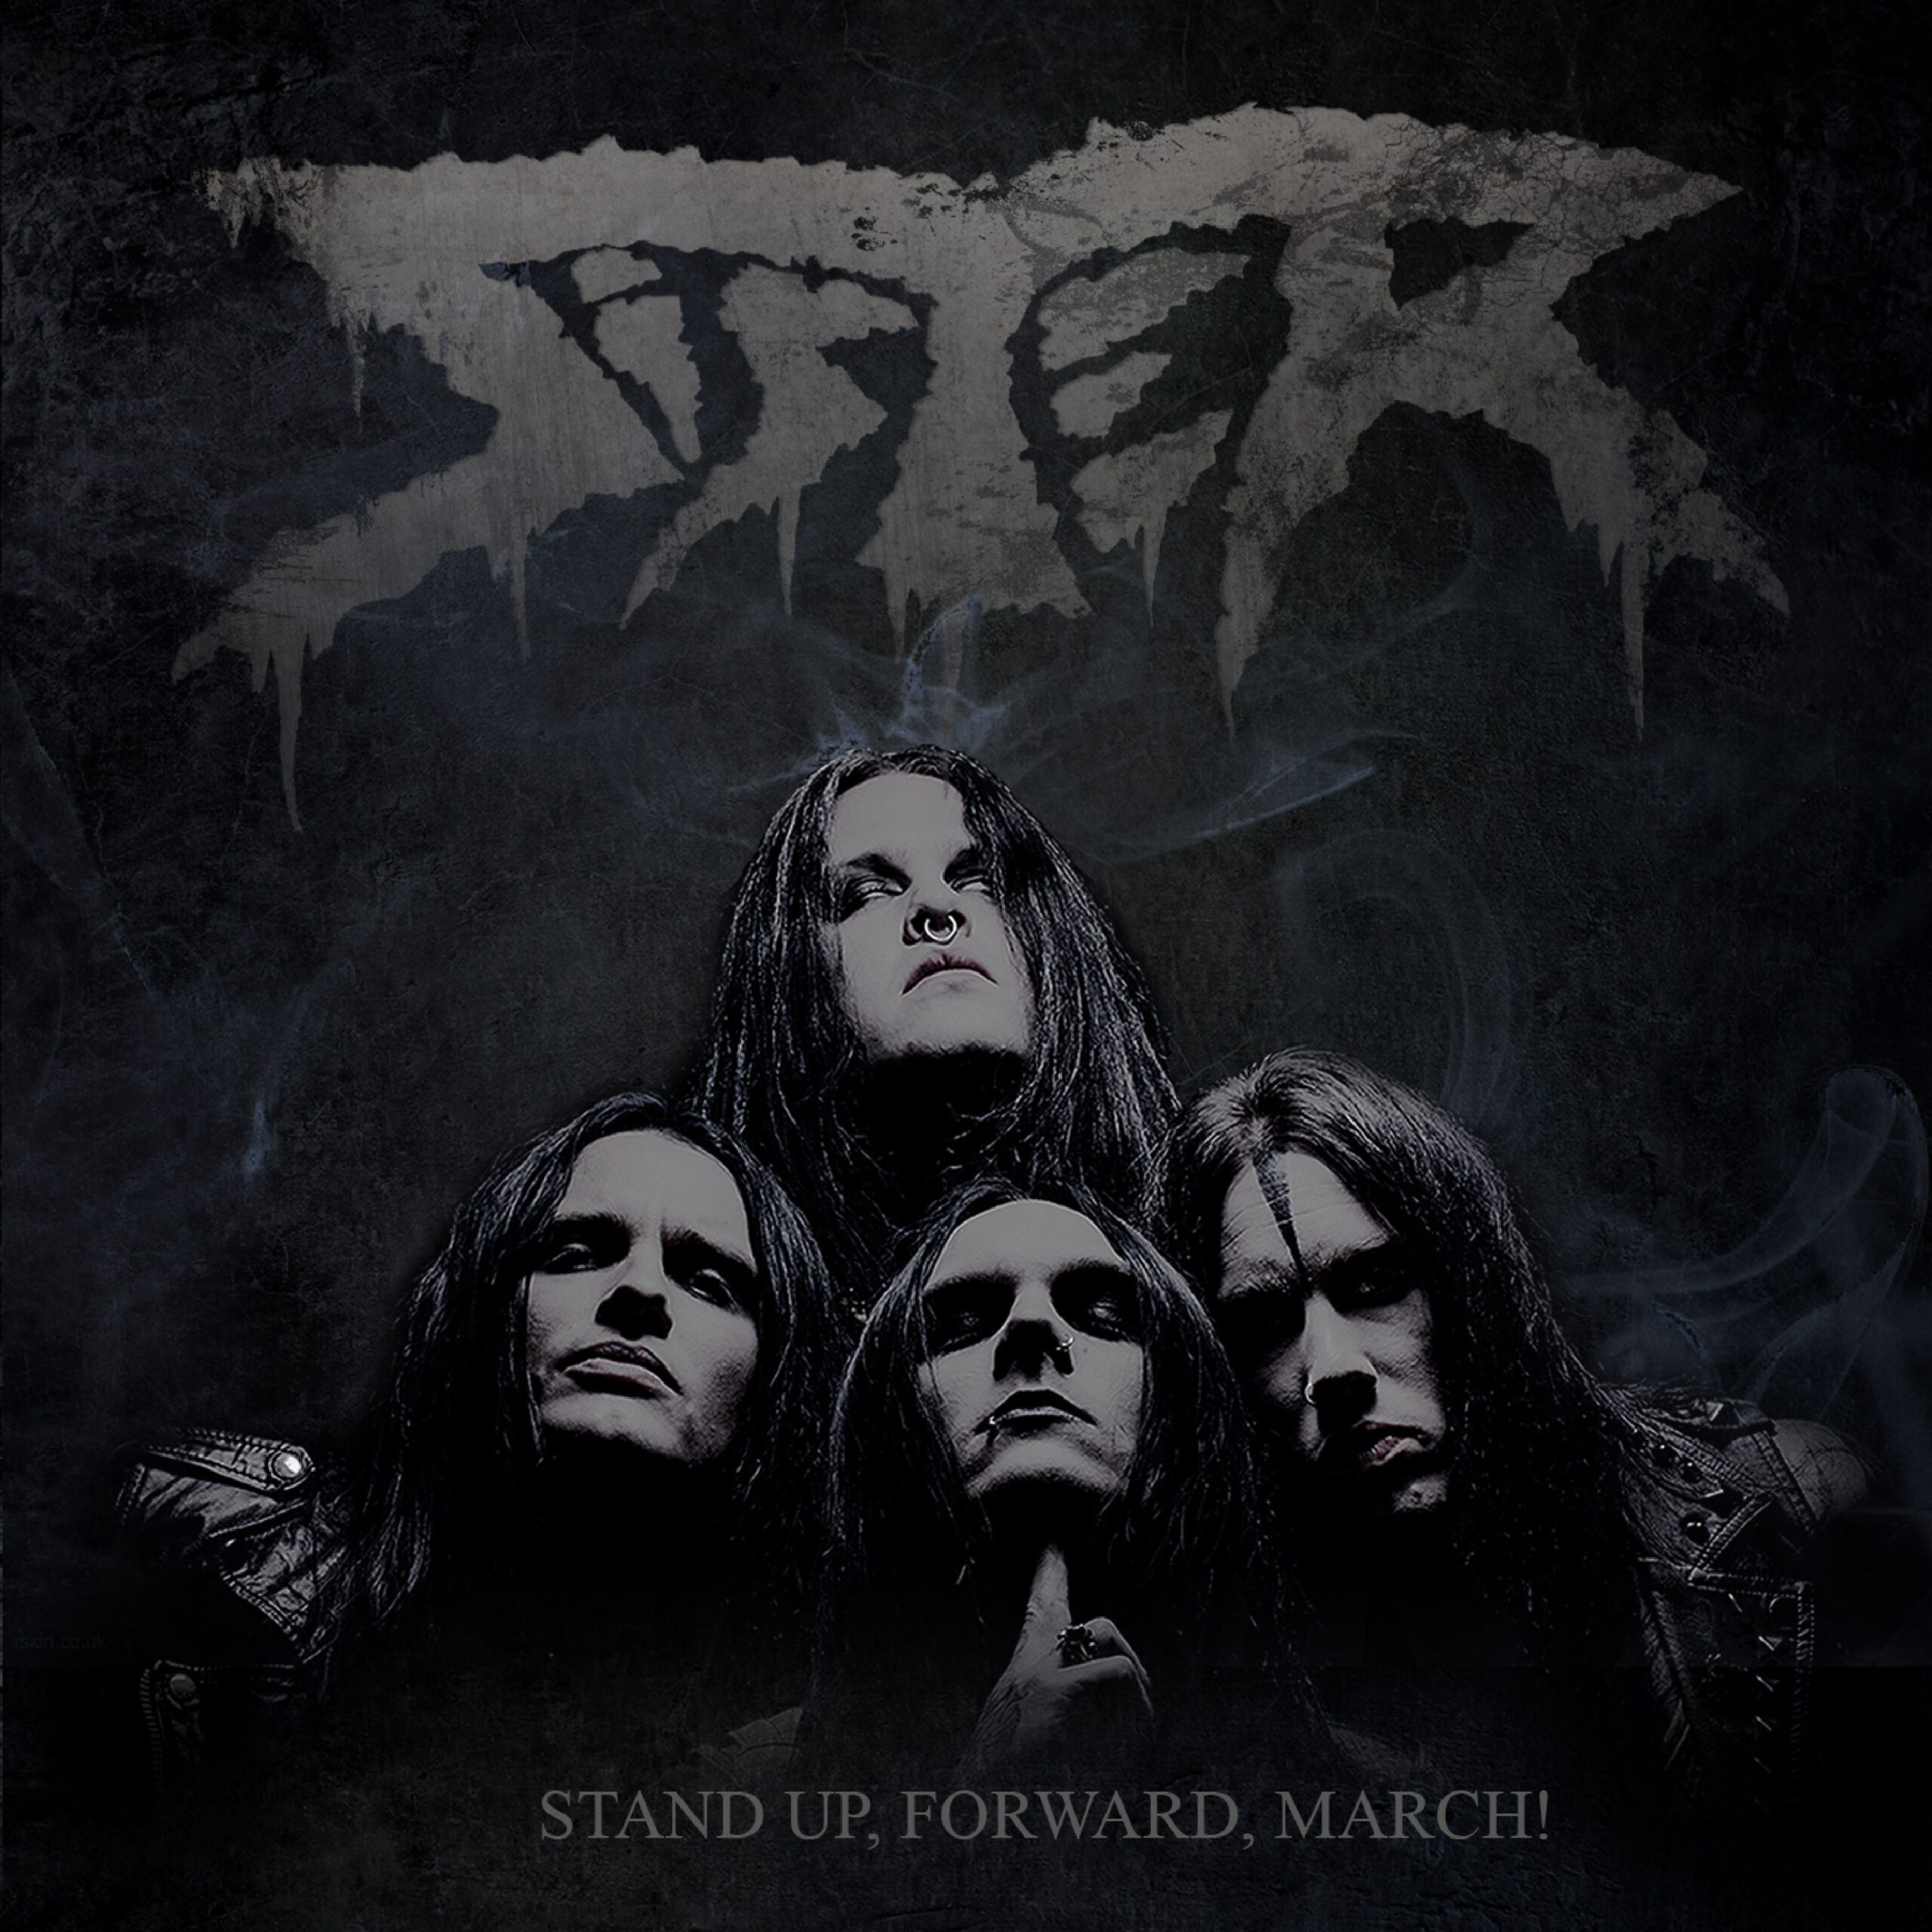 Sister - Stand Up, Forward, March! - Artwork